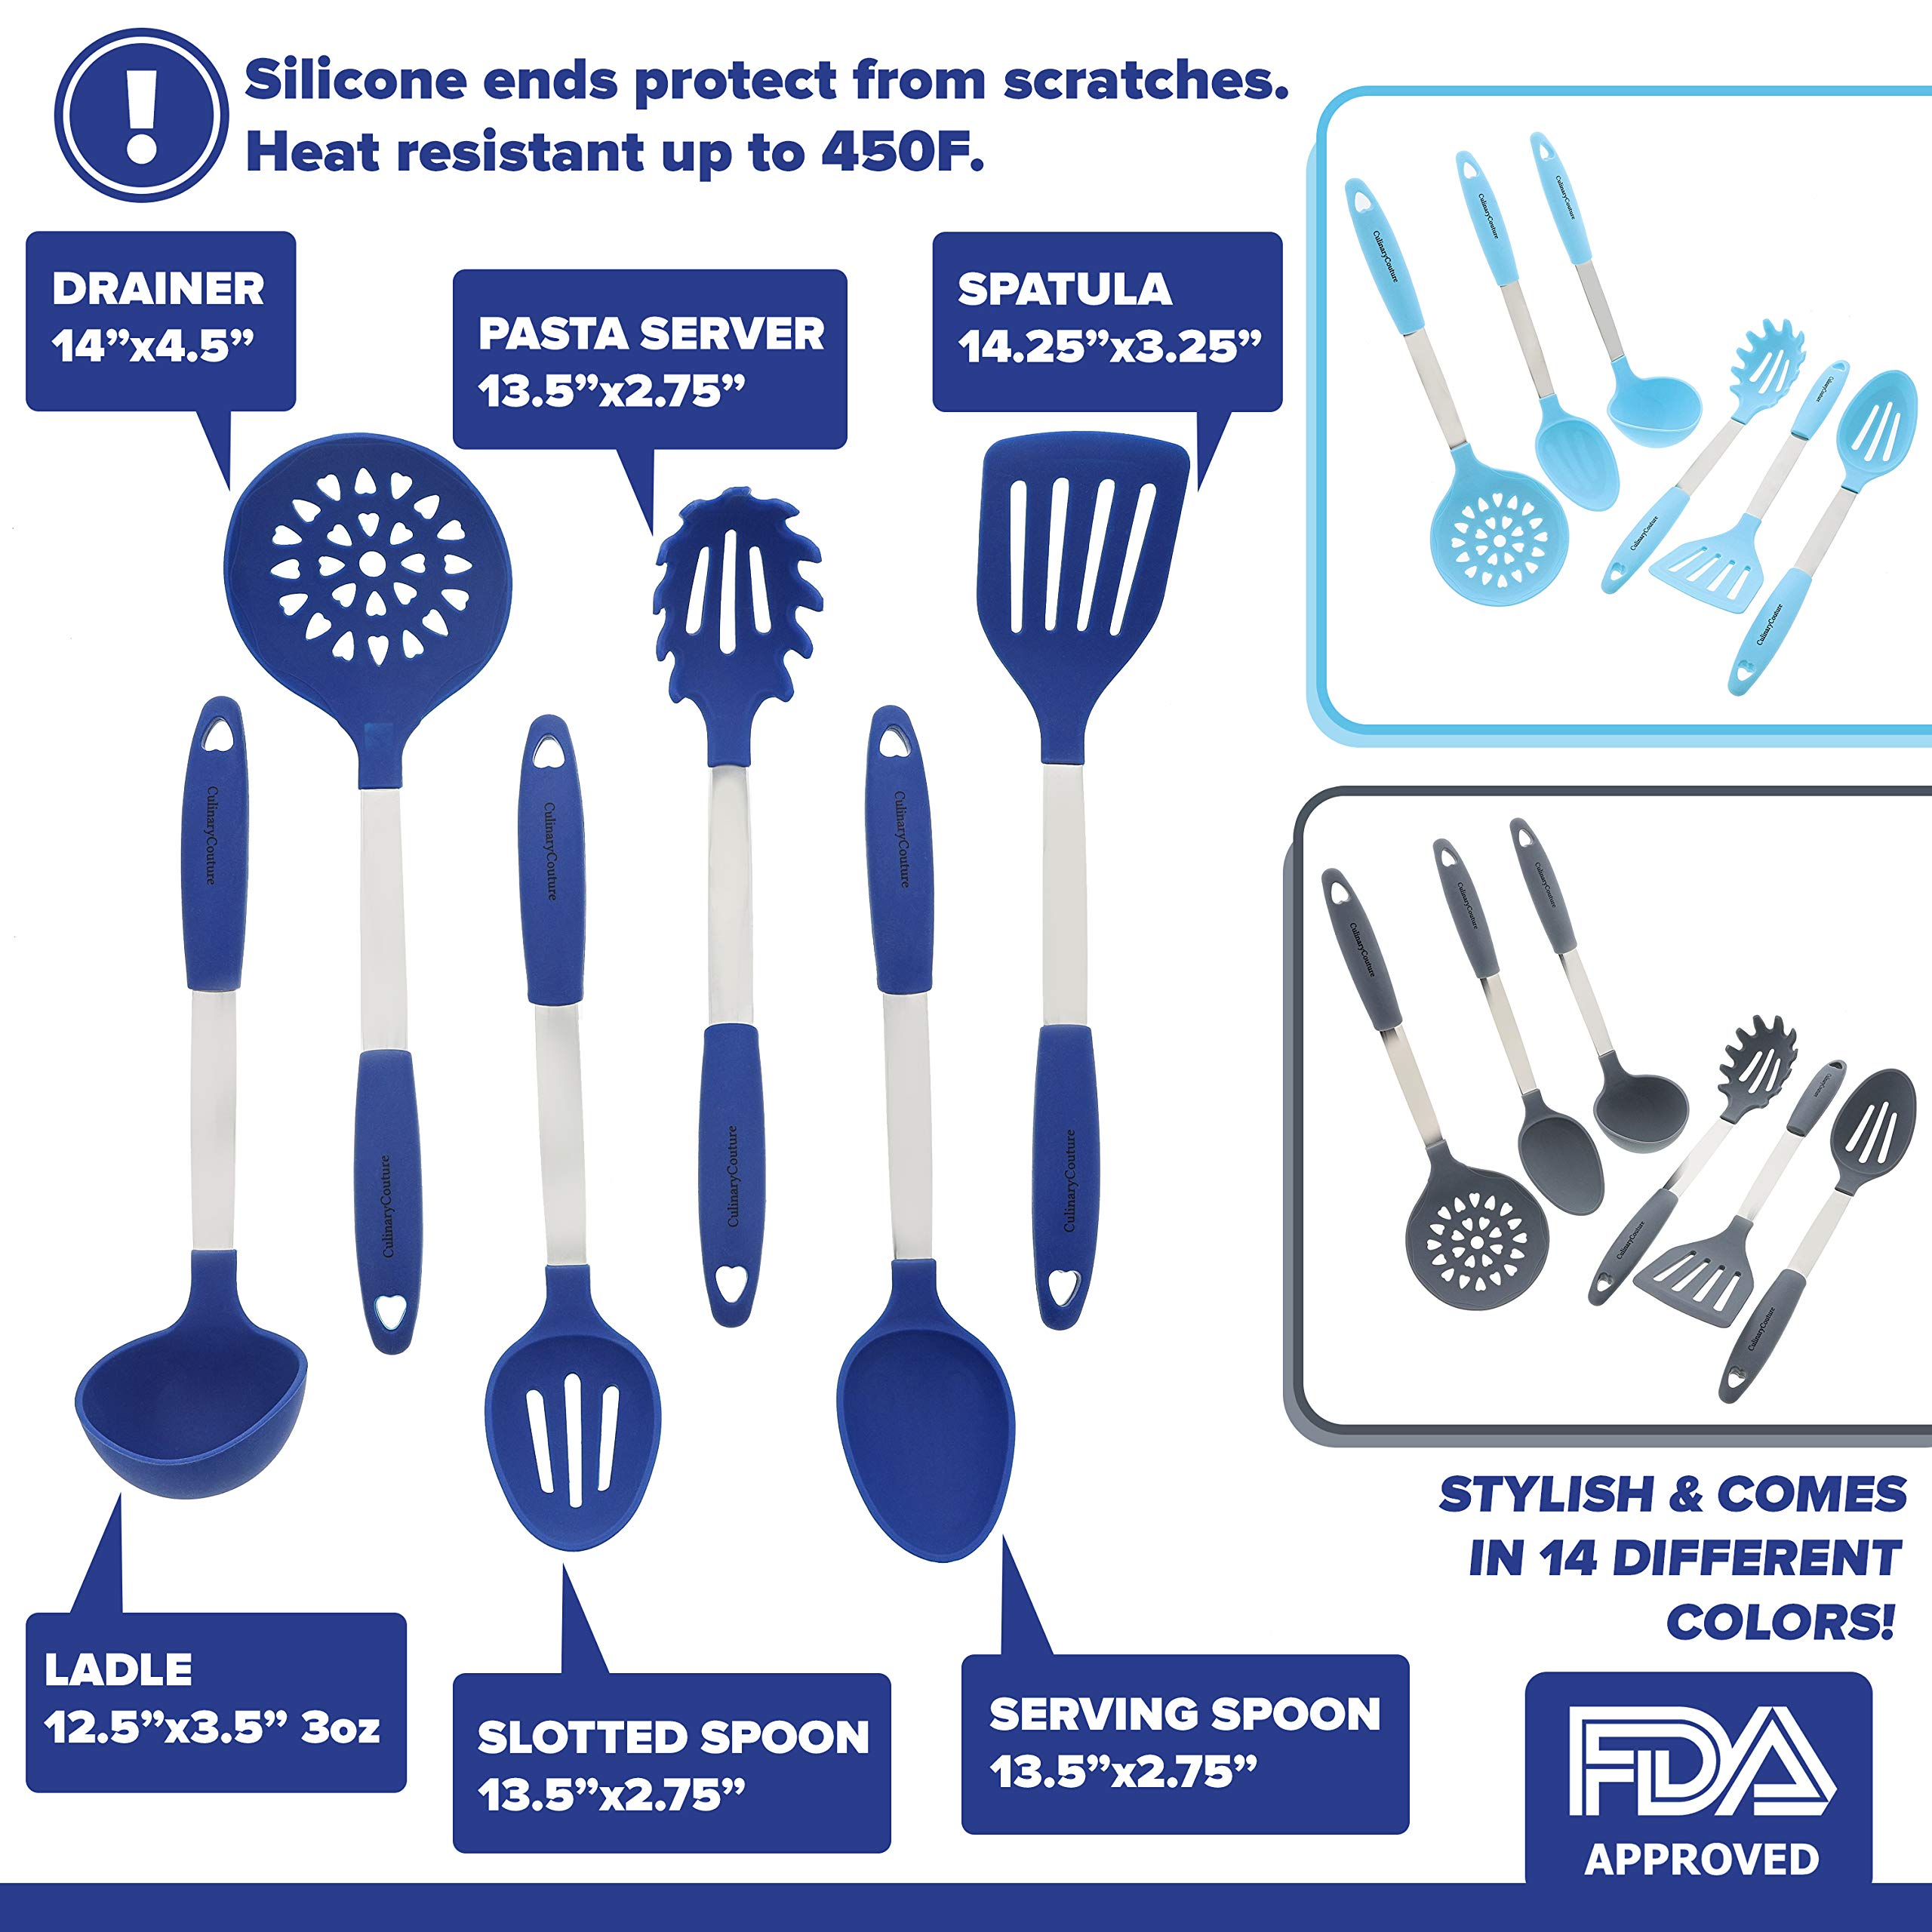 Blue Kitchen Utensil Set - Stainless Steel & Silicone Heat Resistant Professional Cooking Tools - Spatula, Mixing & Slotted Spoon, Ladle, Pasta Fork Server, Drainer - Bonus Ebook! by Culinary Couture (Image #2)